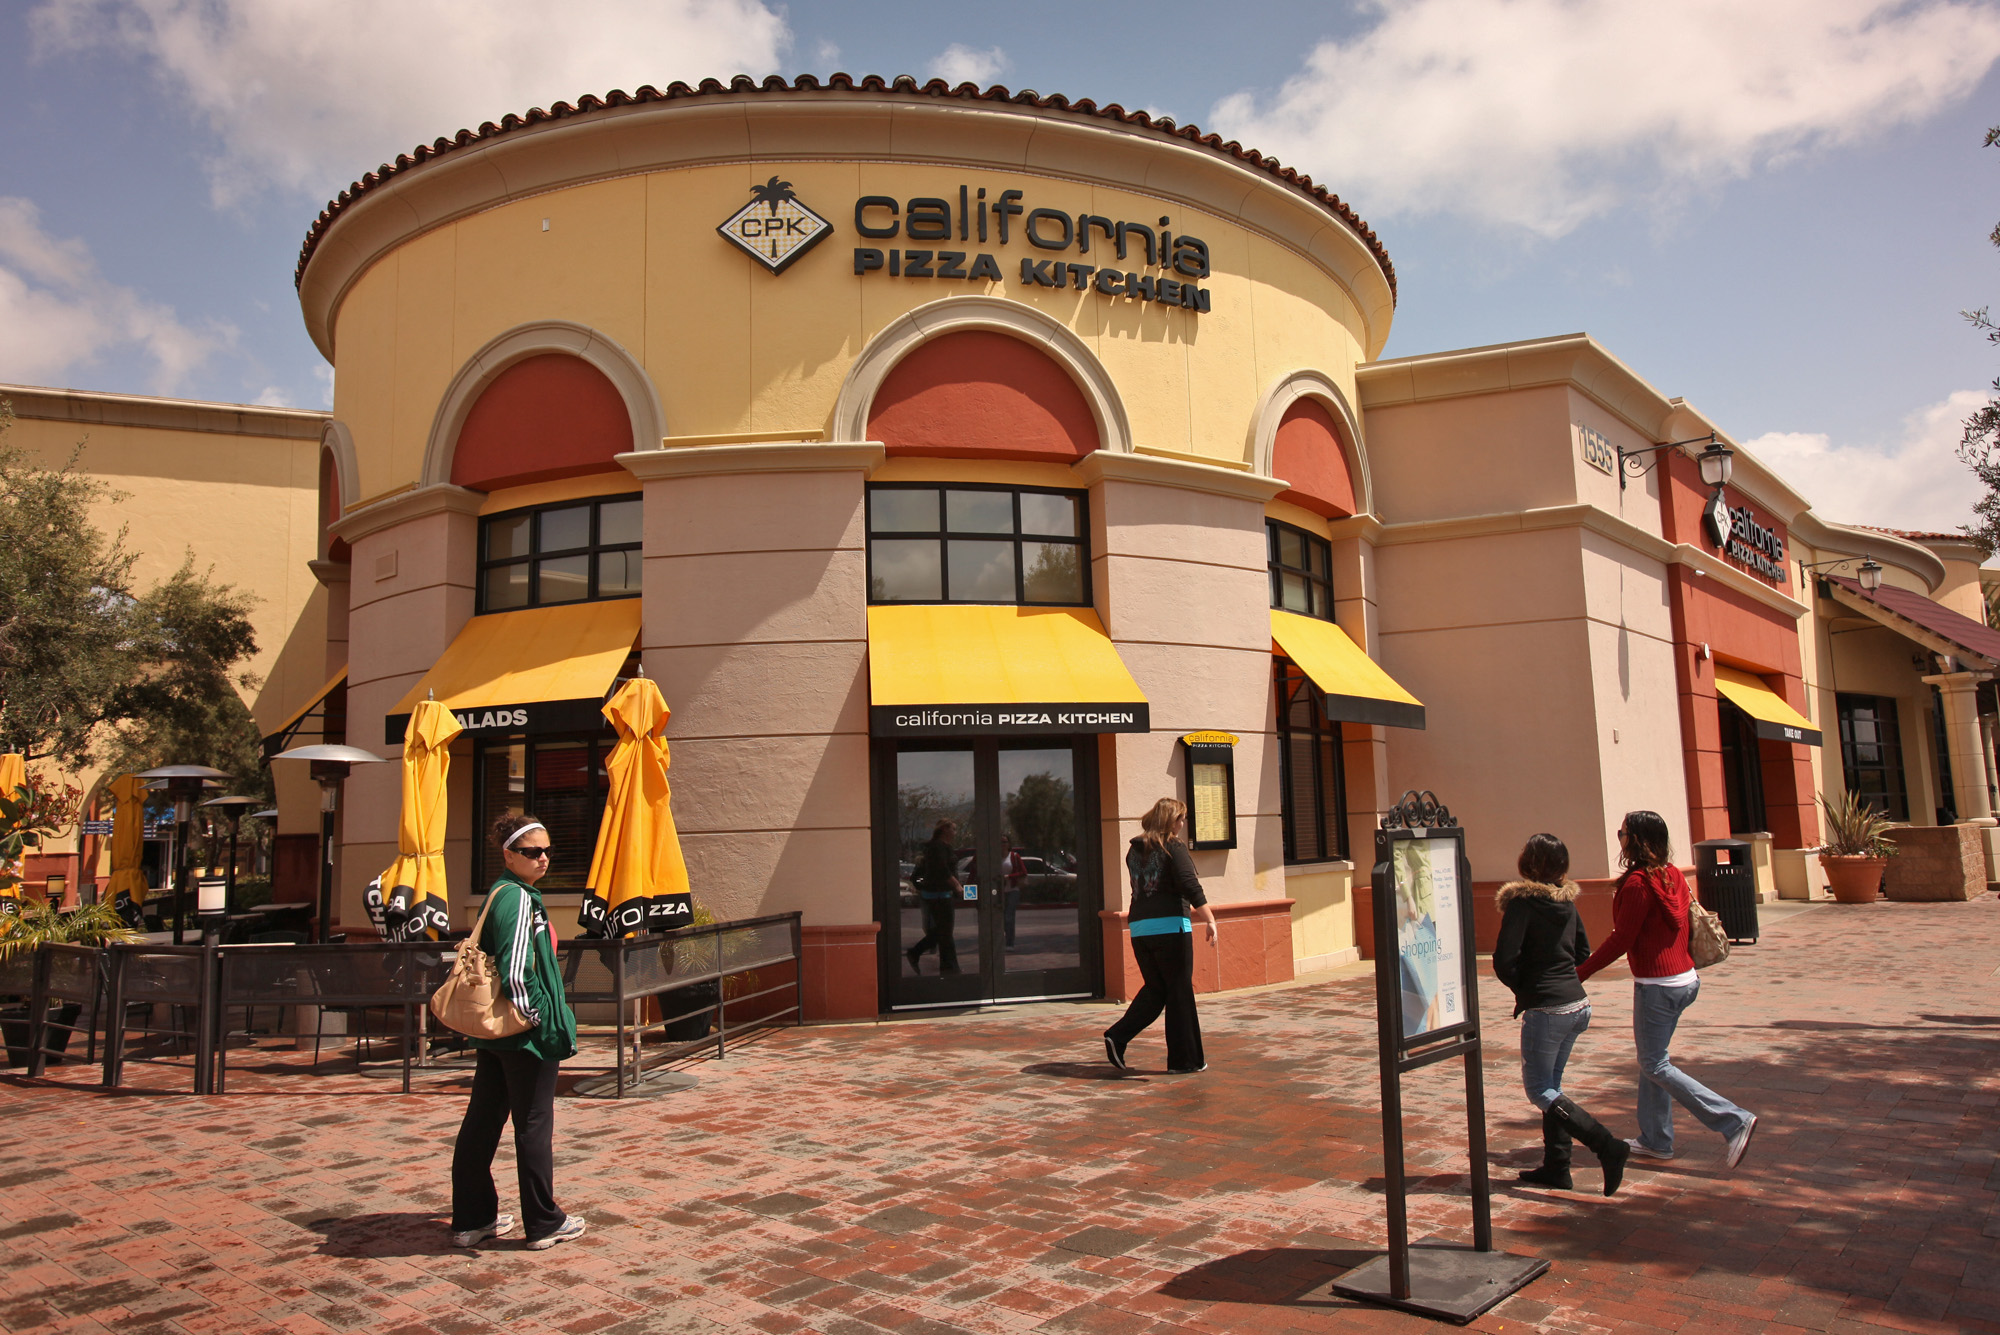 California Pizza Kitchen located at the Simi Valley Town Center April 12, 2010. The Los Angeles?bas